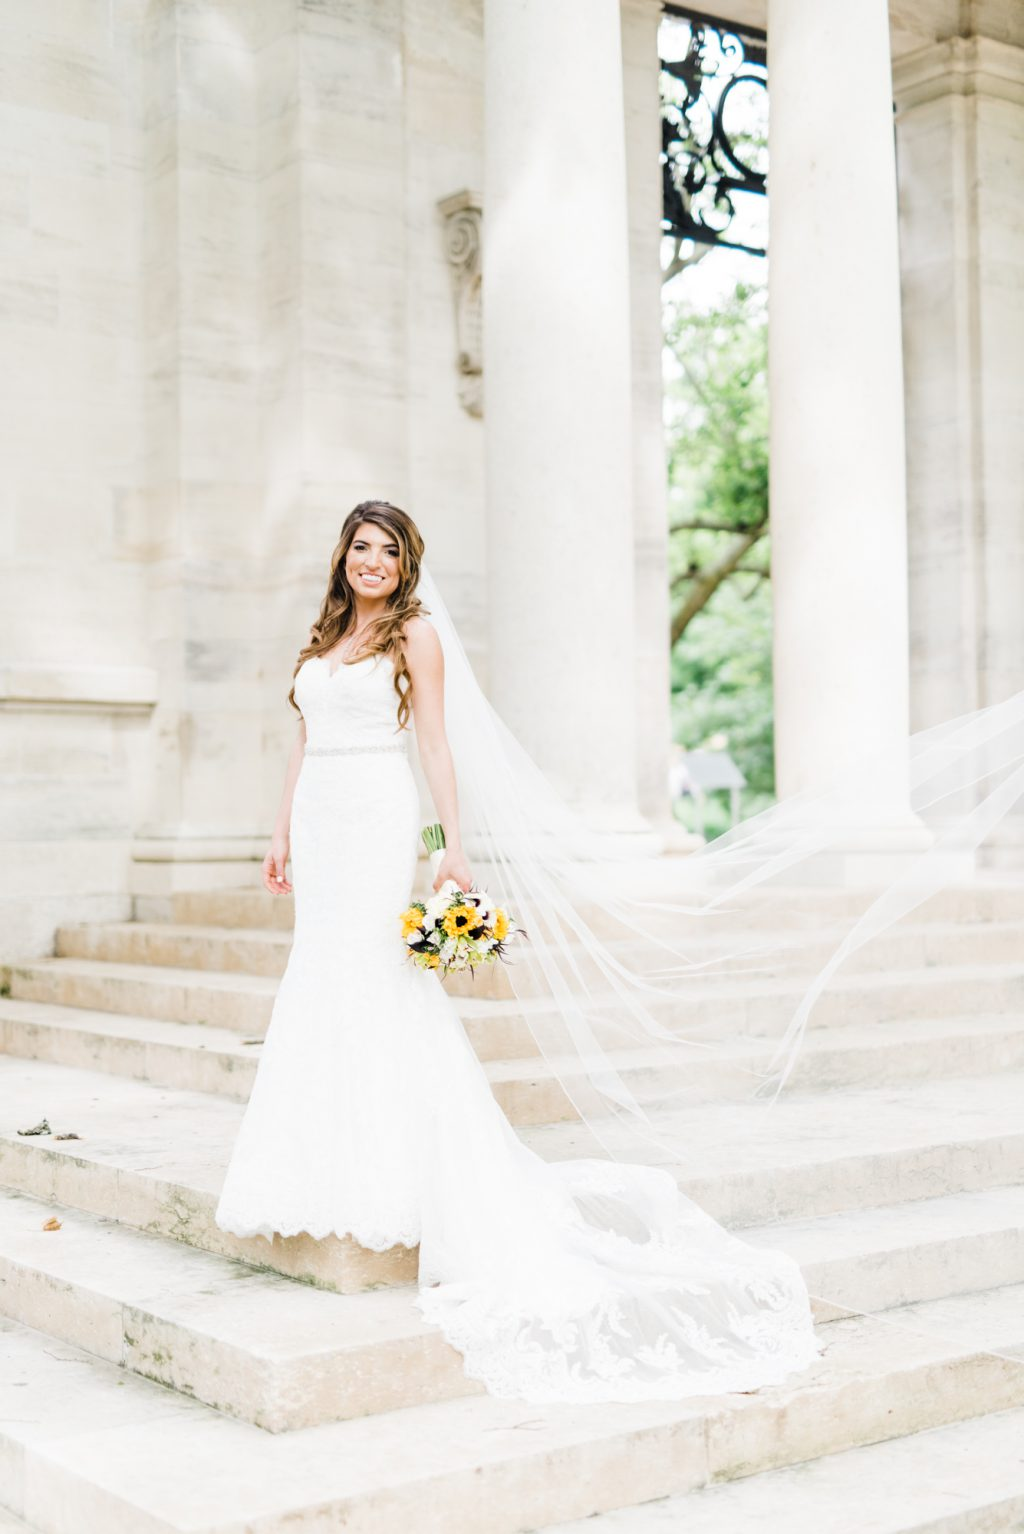 haleyrichterphoto-front-and-palmer-spring-wedding-rodin-museum-loews-hotel-philadelphia-096